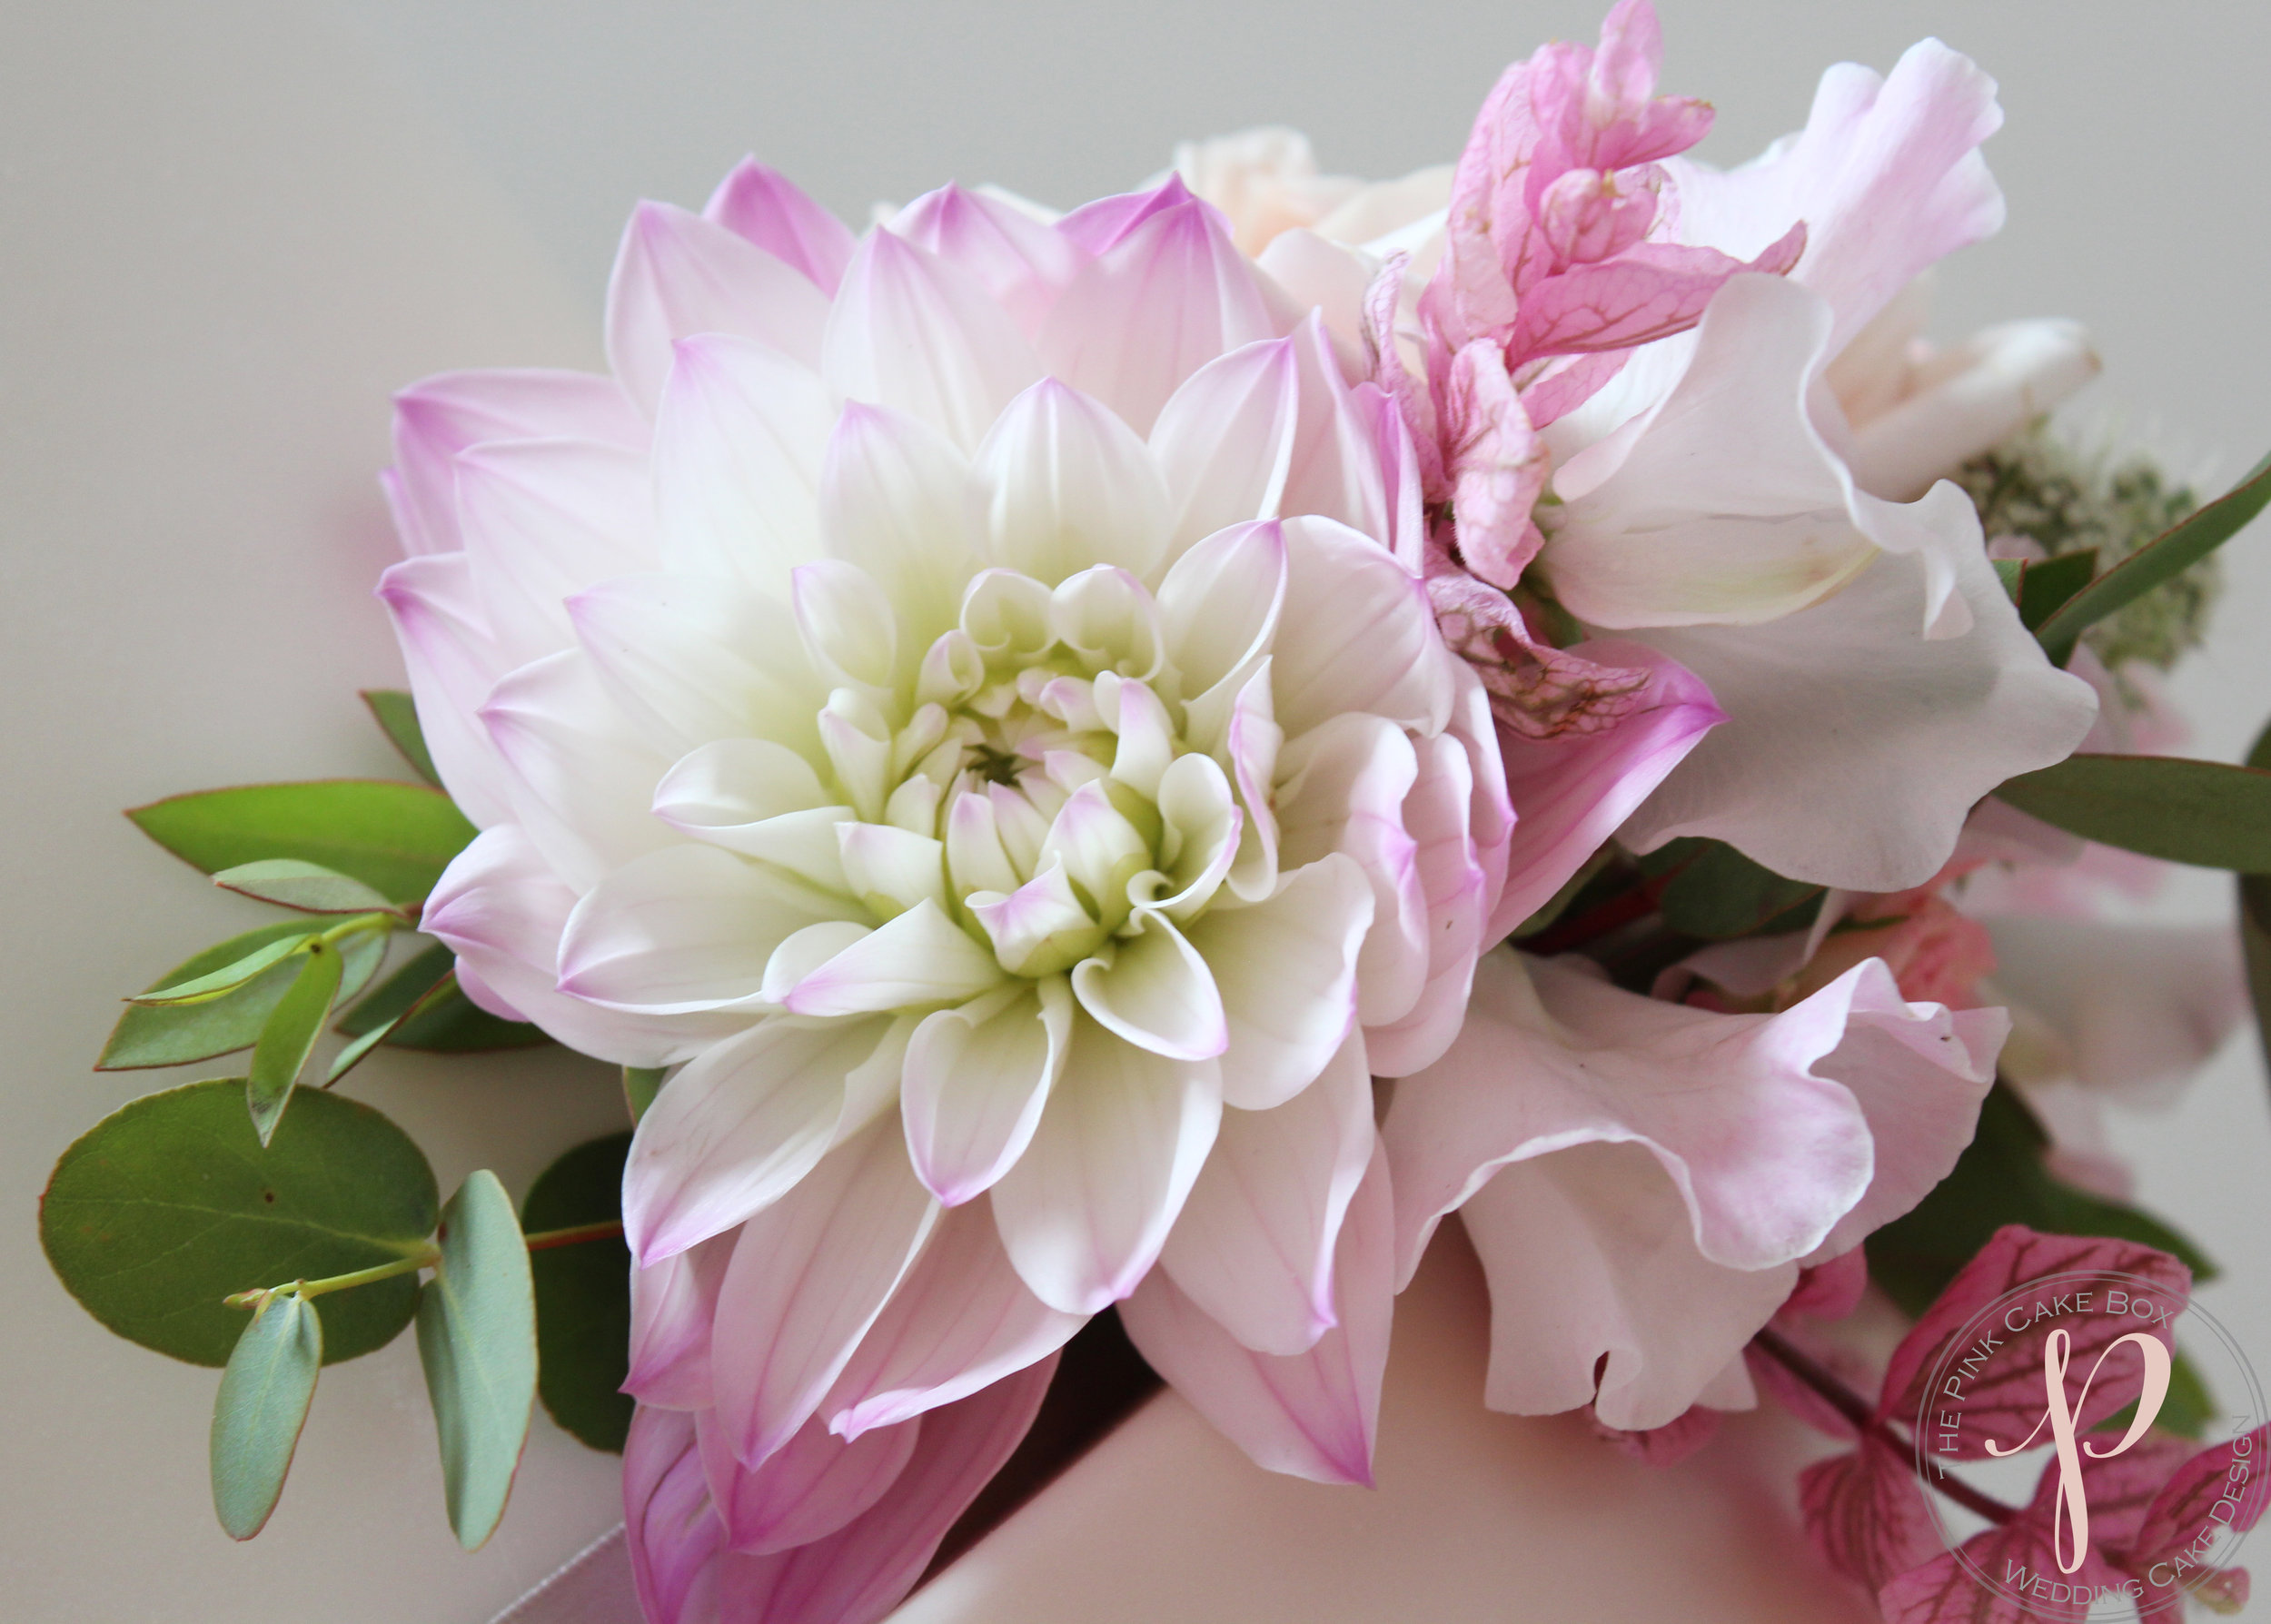 dahlia blush wedding cake.jpg